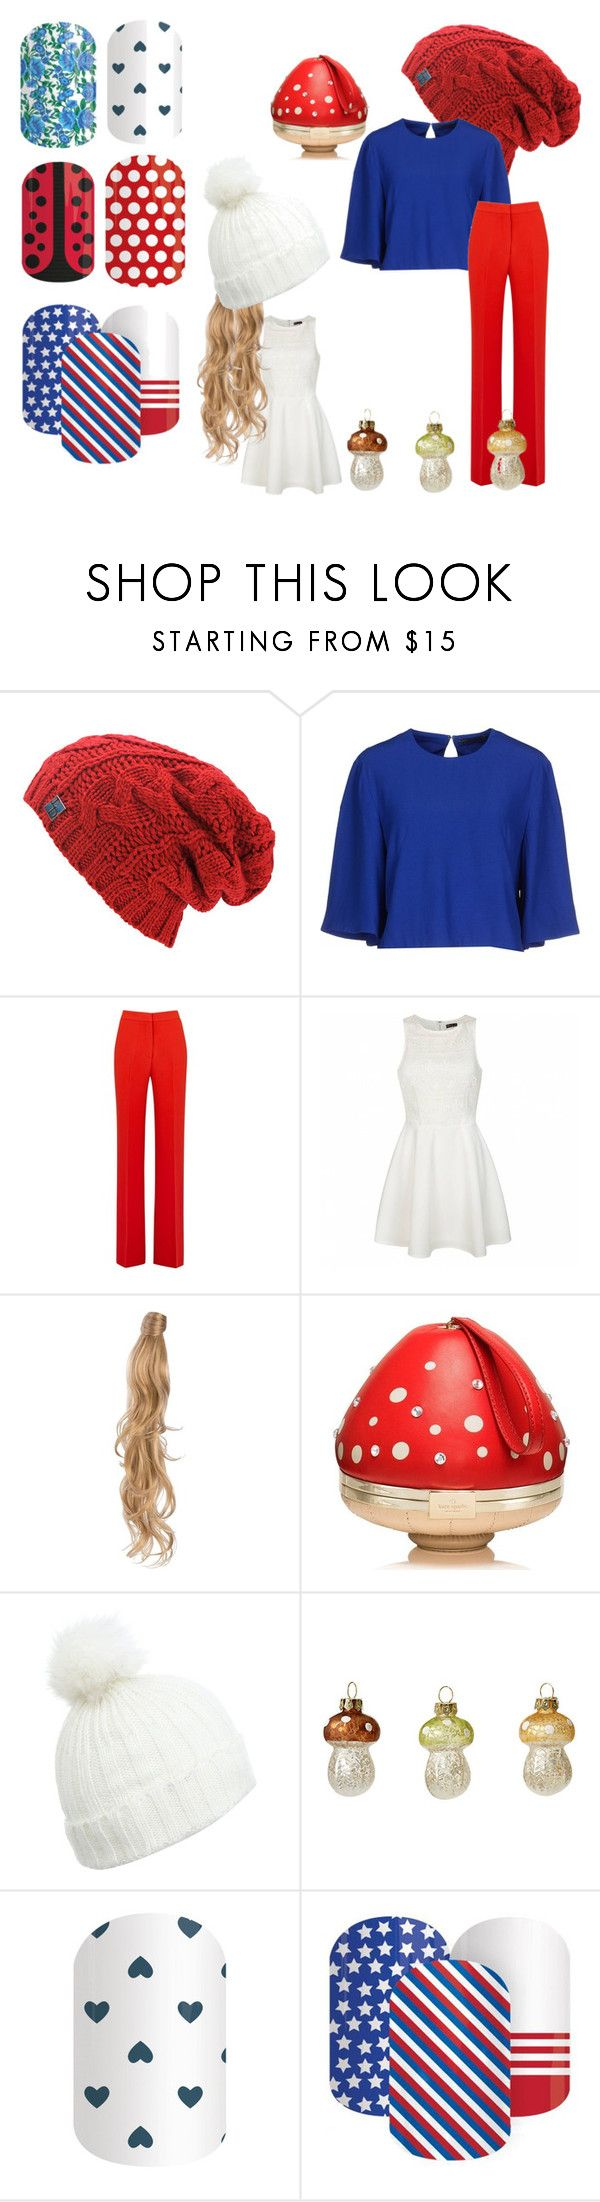 """""""SMURFS!"""" by brooke-redman on Polyvore featuring beauty, Alexander McQueen, MSGM, Ally Fashion, Rapunzel Of Sweden, Kate Spade and Miss Selfridge"""